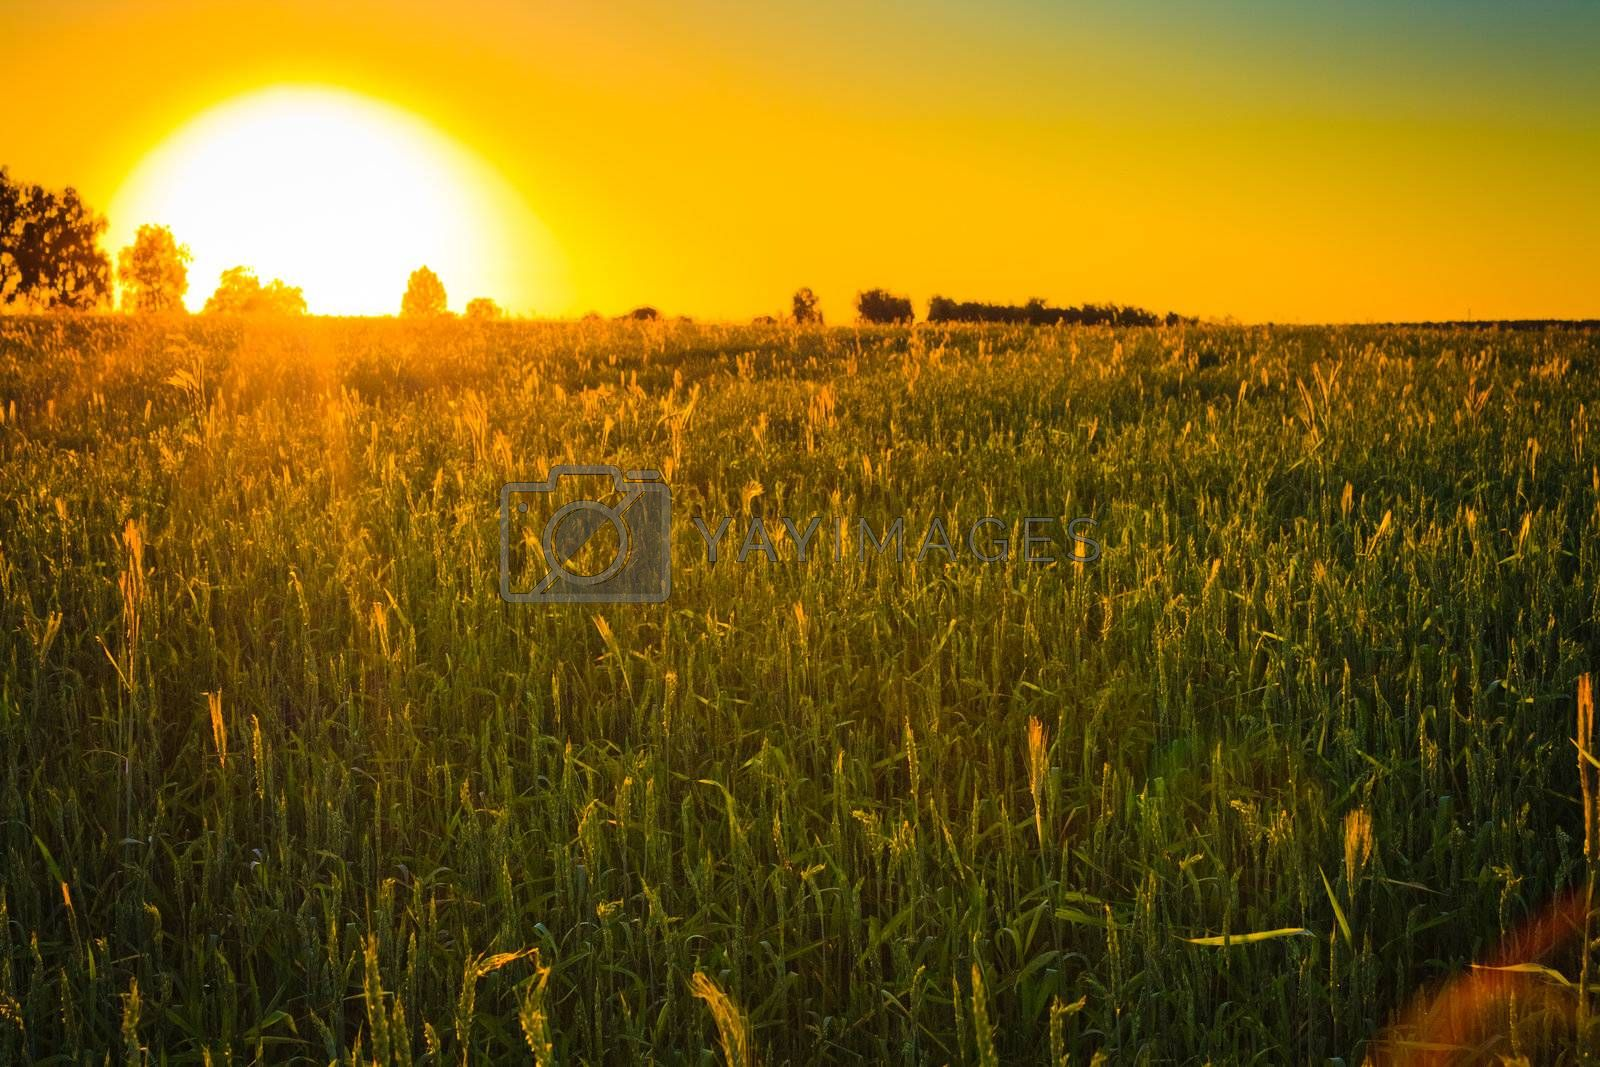 Agricultural plants on field with sunlight